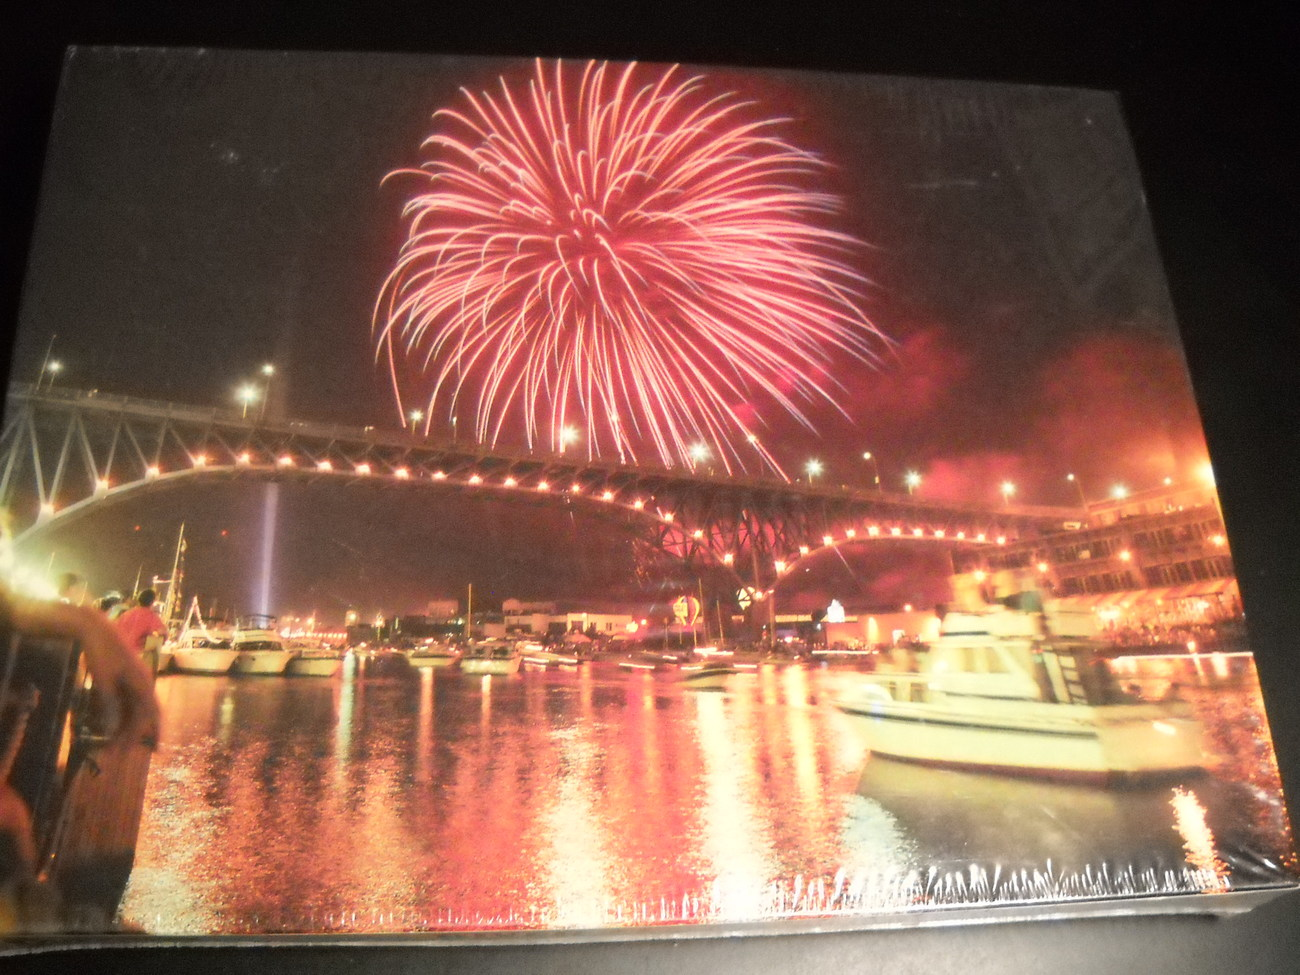 Jigsaw puzzle burrows bros riverfest cleveland mort tucker sealed 08